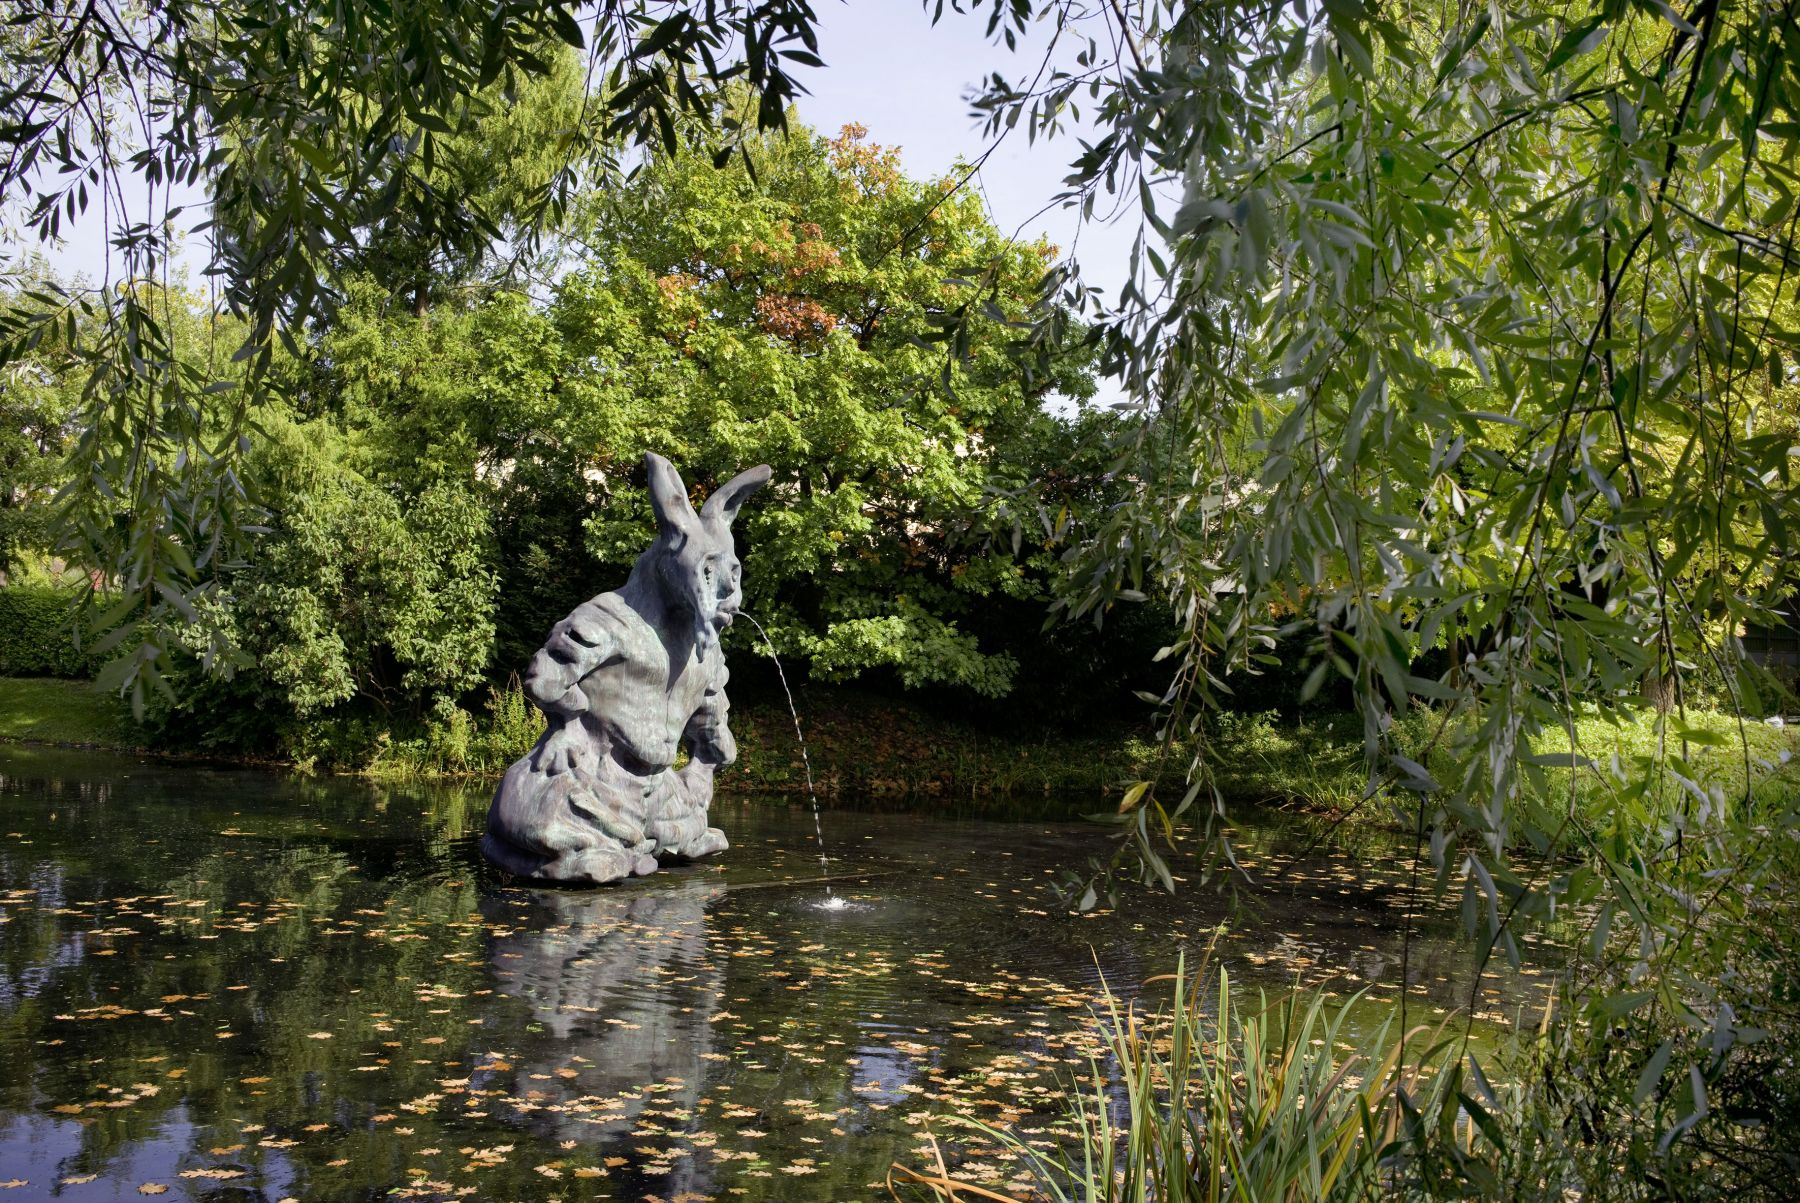 Fondation Beyeler, Riehen, 6 October – 2 February 2014